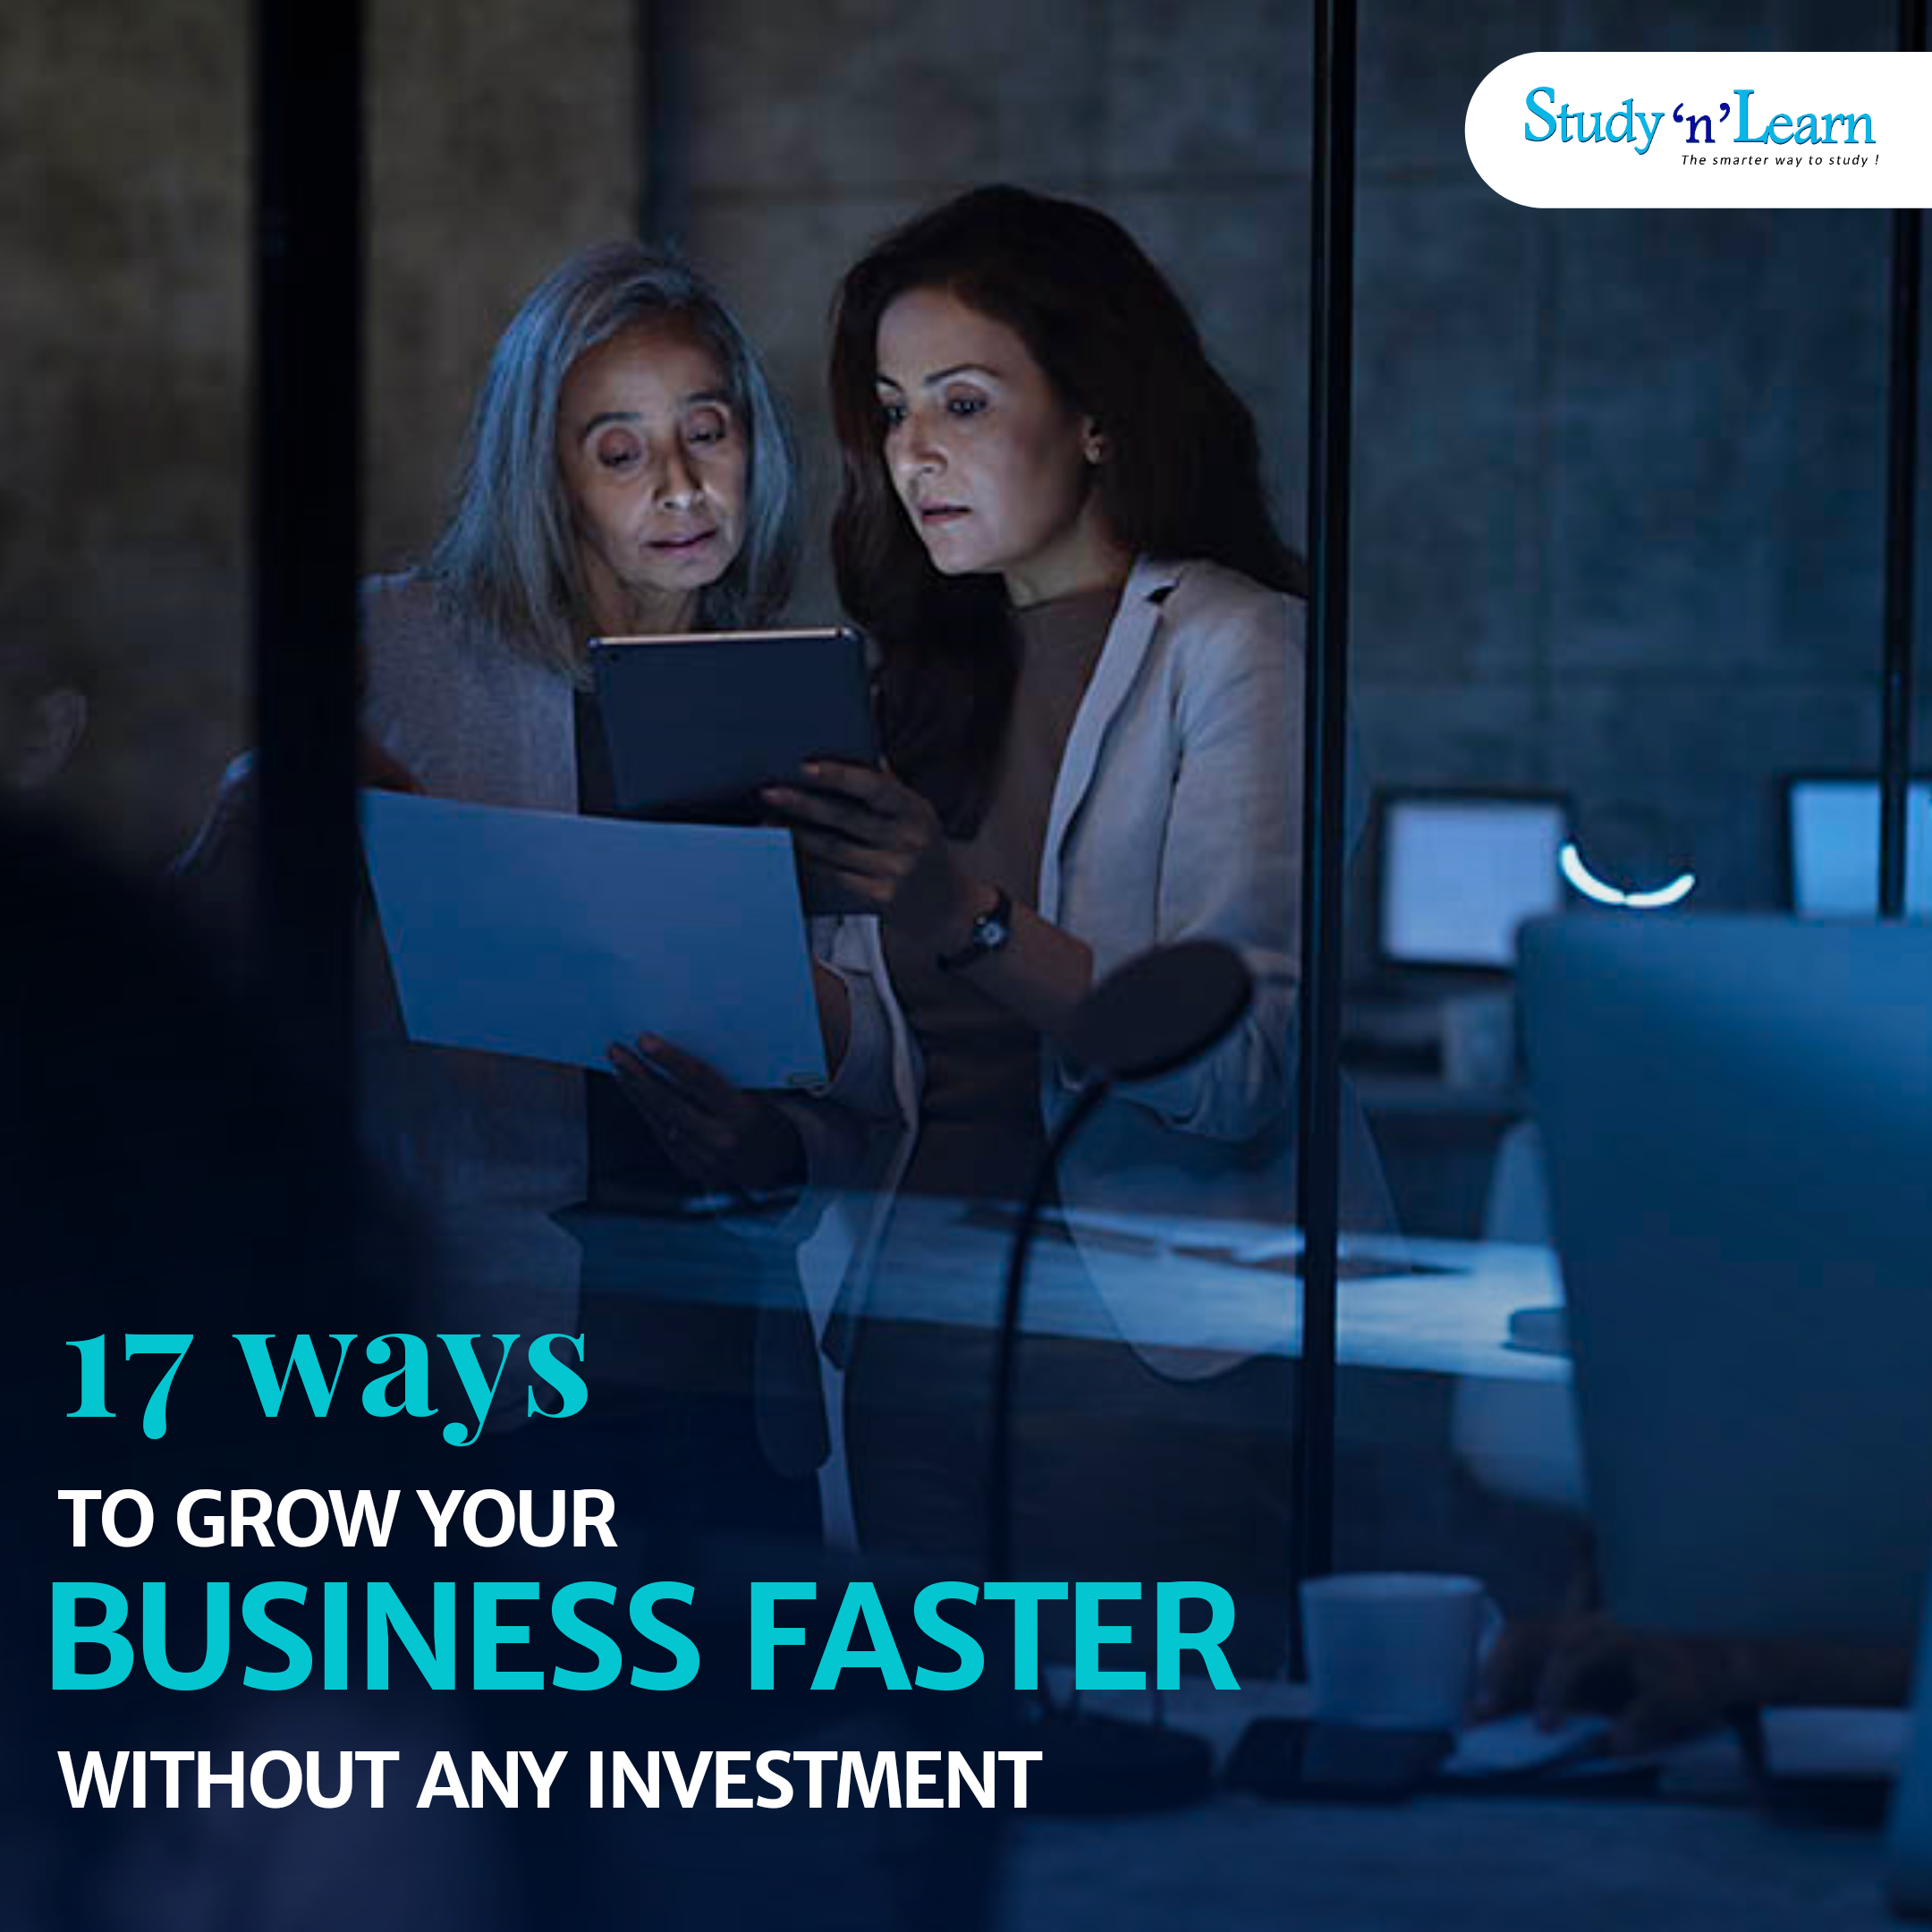 17 Ways to Grow Your Business Fast without Any Investment